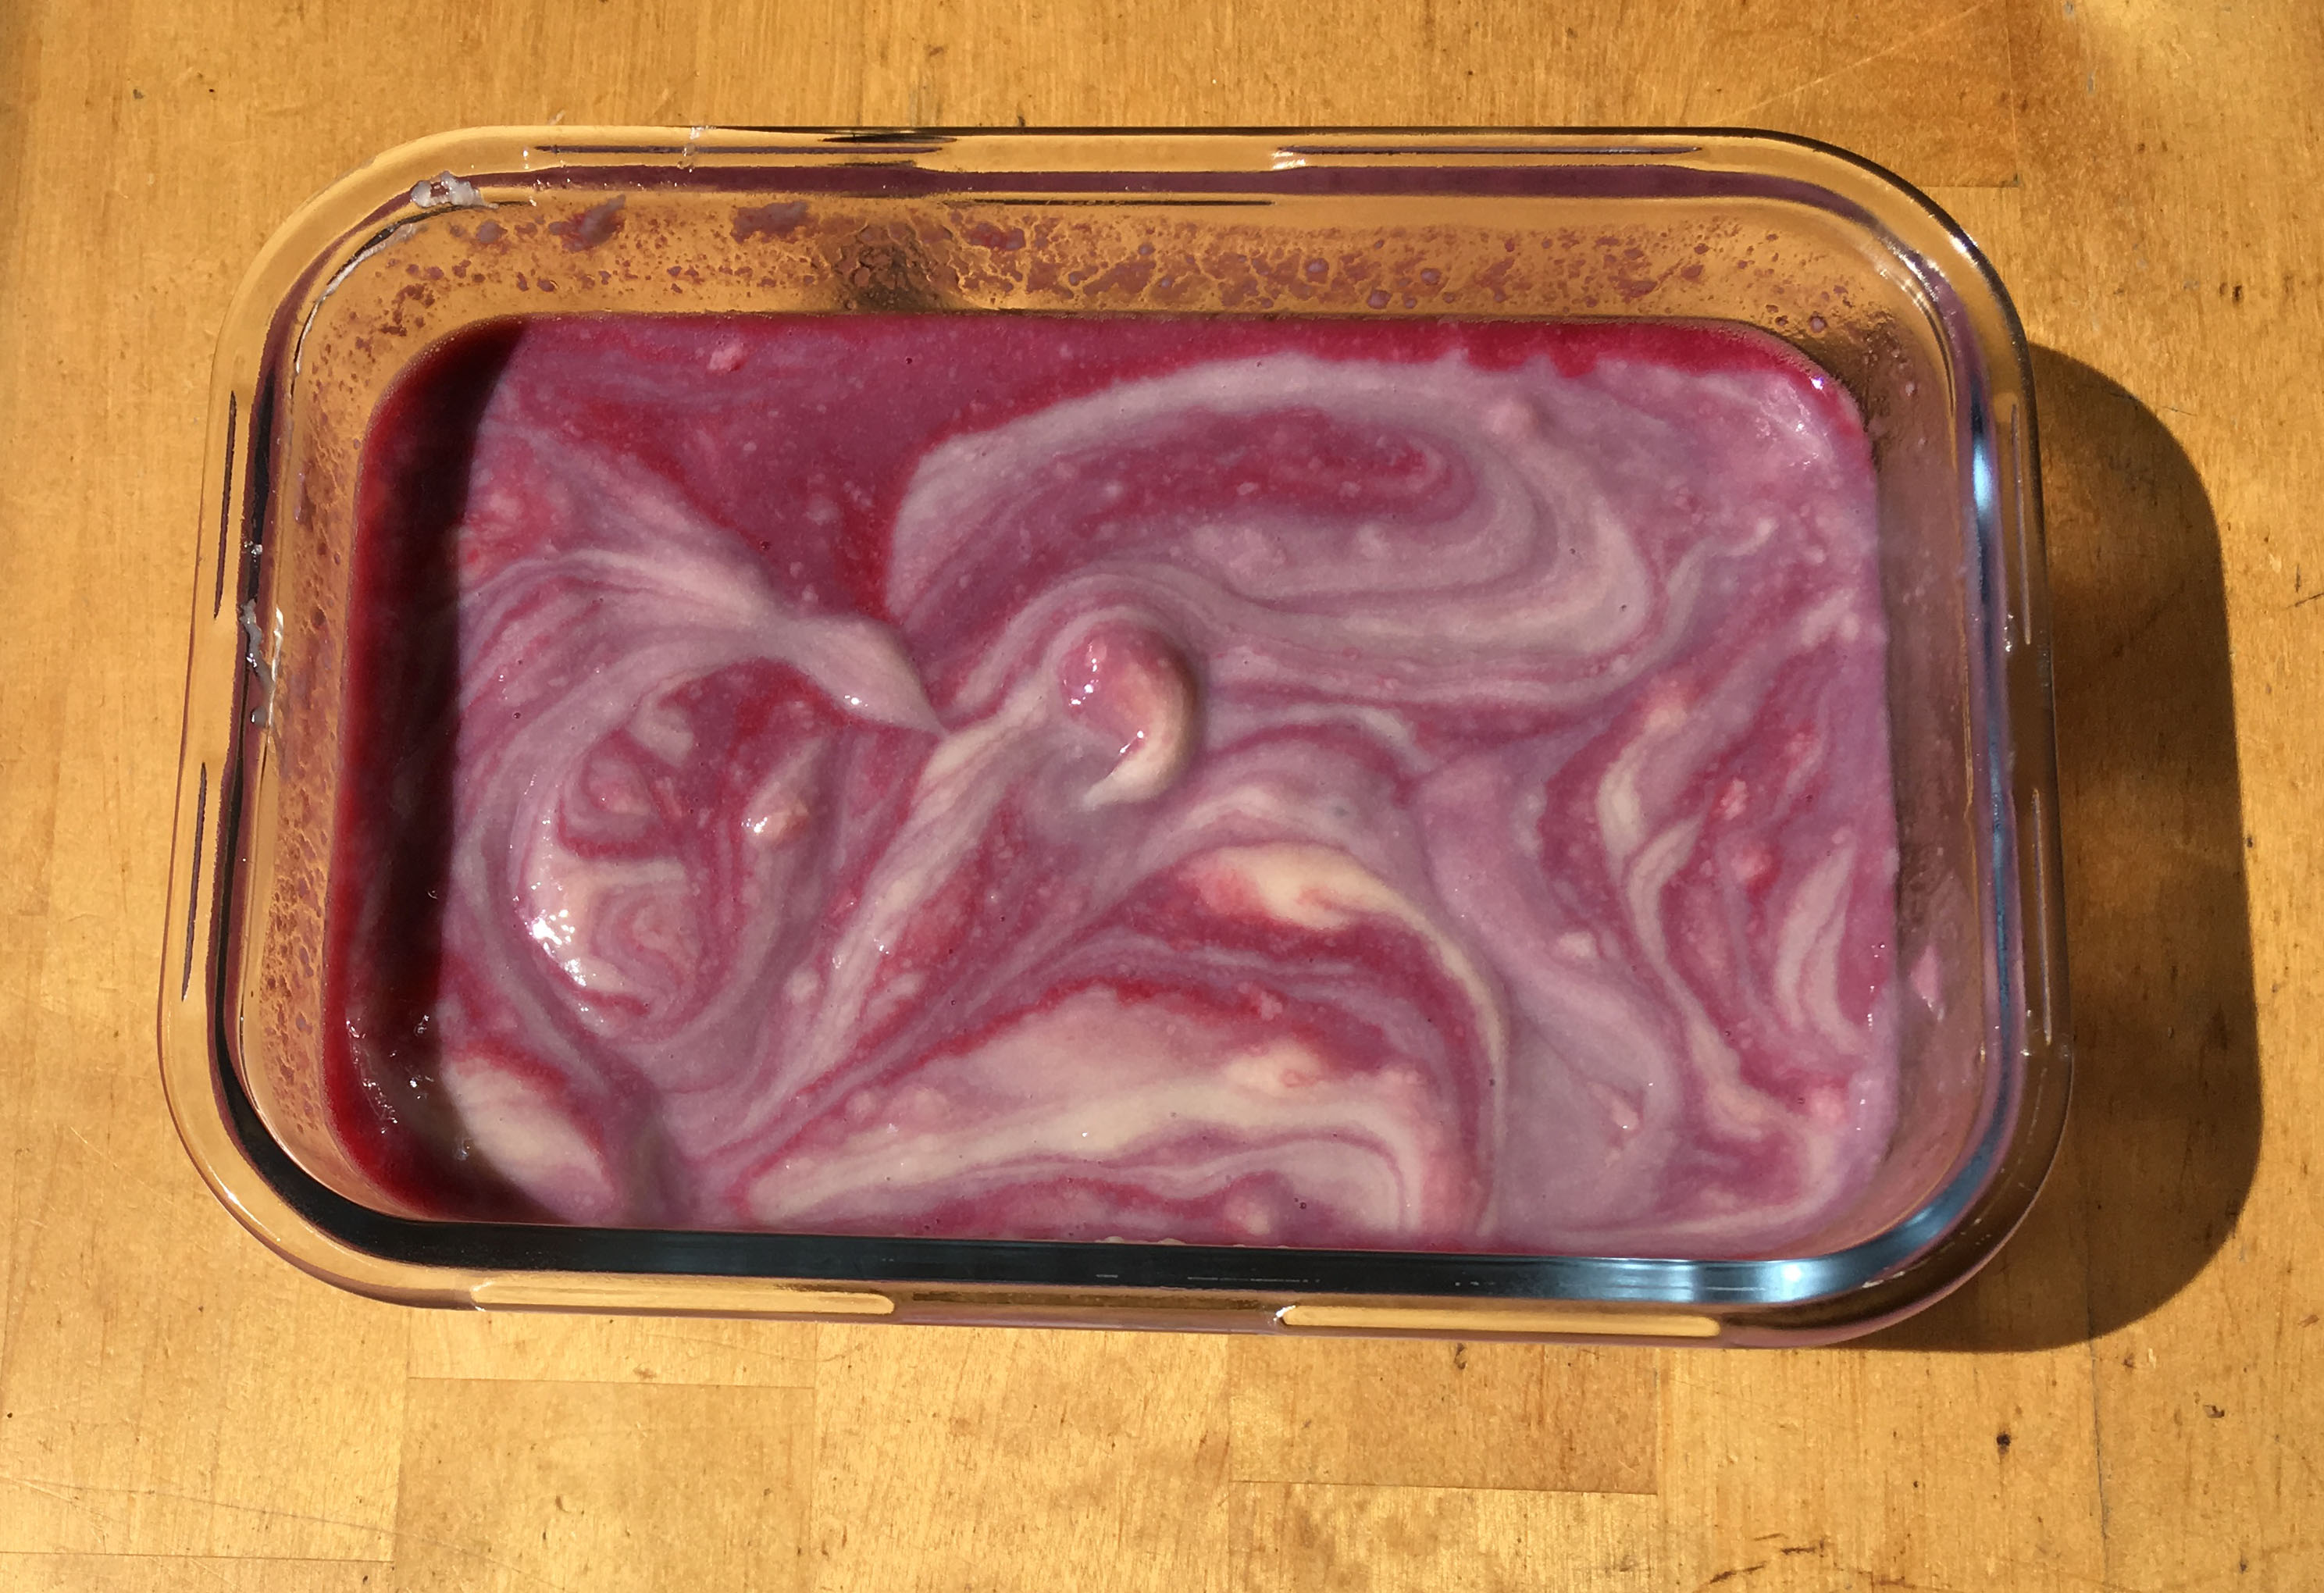 Picture of Rose Pudding